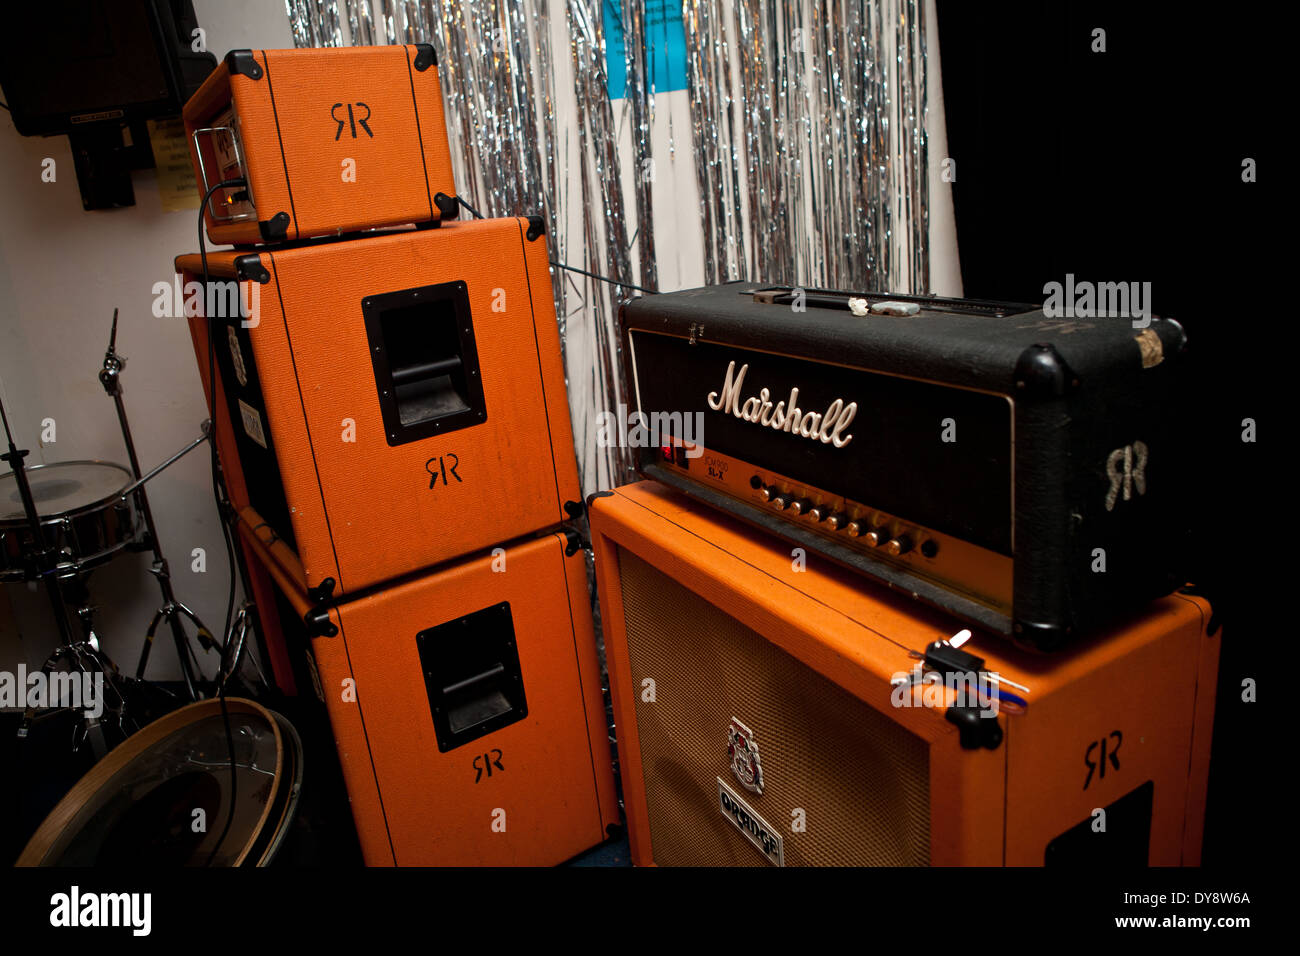 Marshall Amplifier Stock Photos & Marshall Amplifier Stock Images